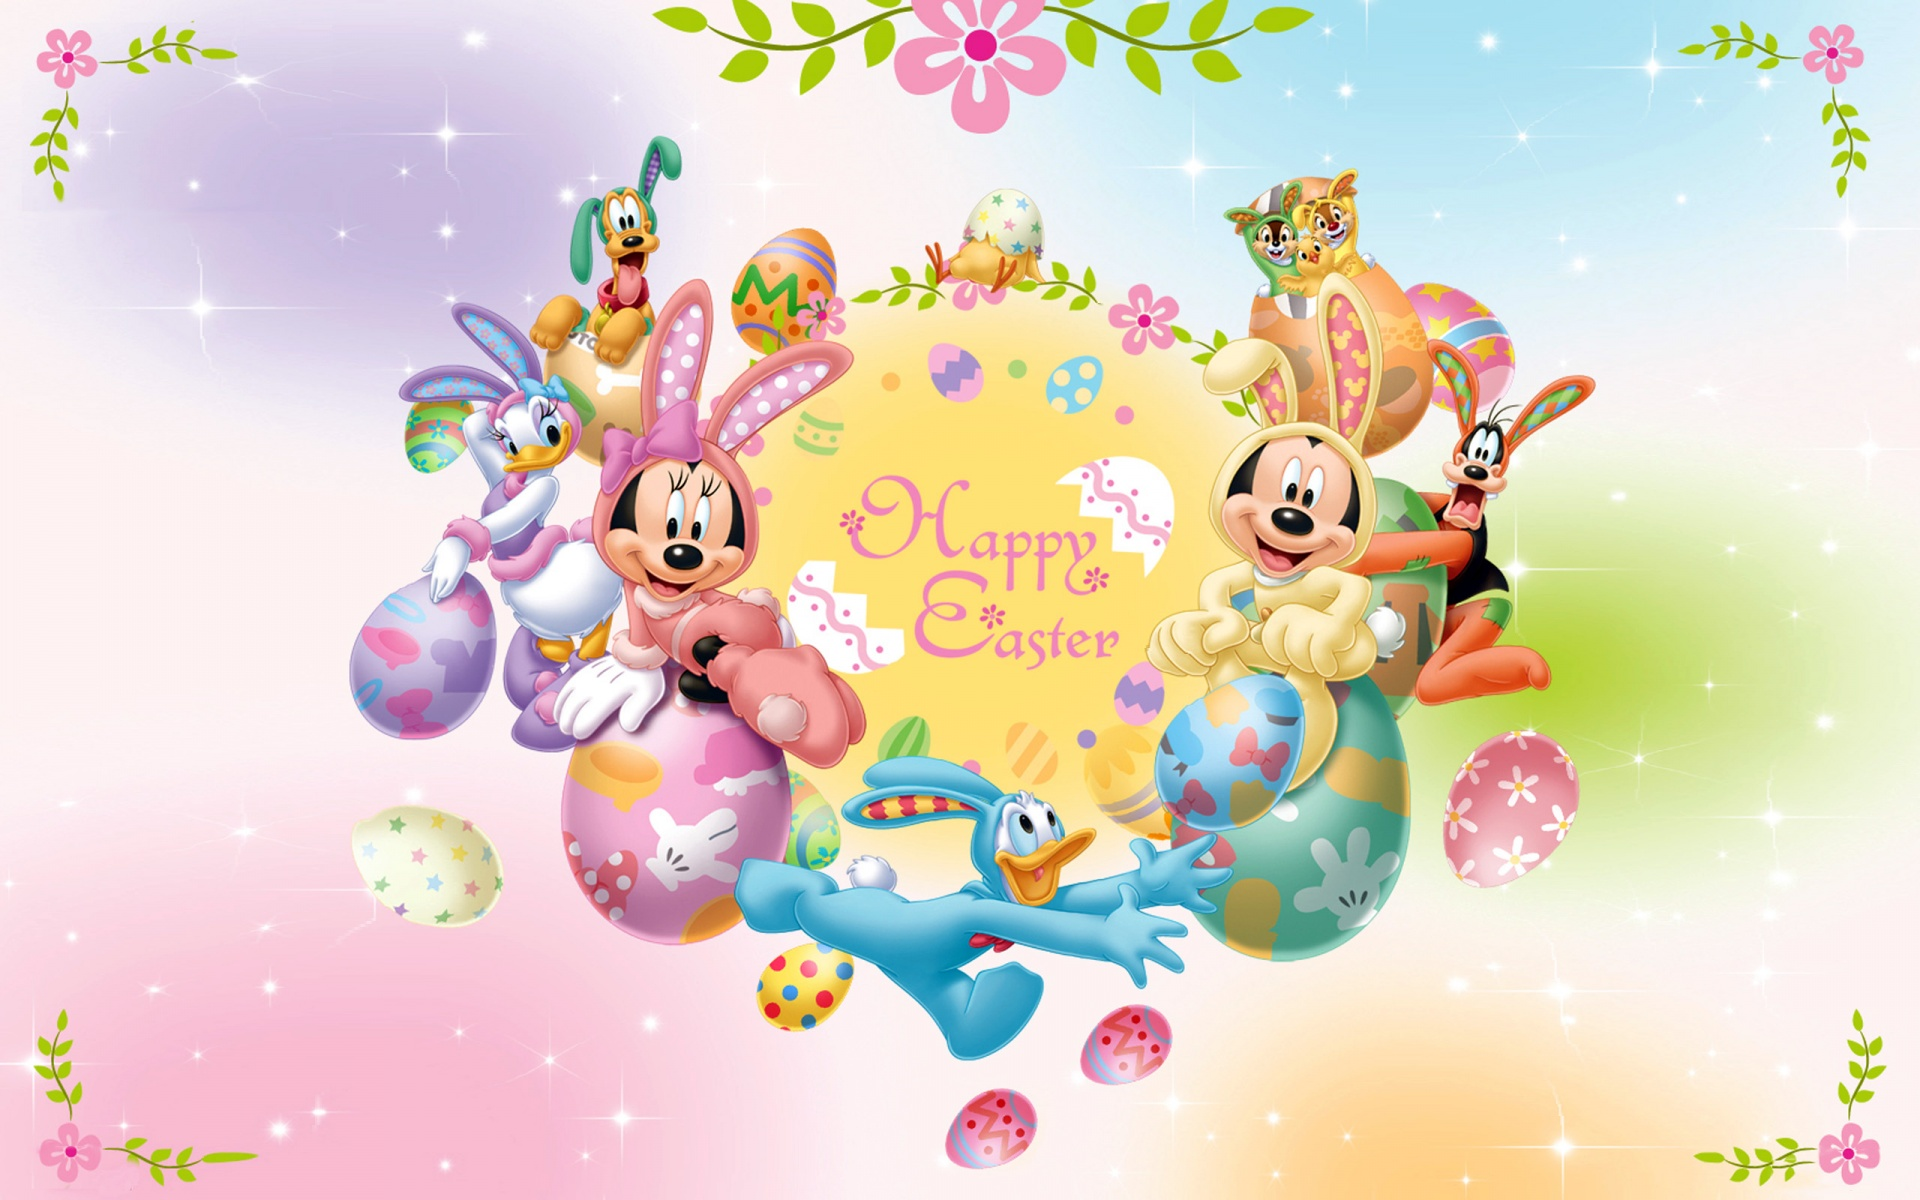 Happy Easter 2020 Images Quotes Wishes Messages SMS and 1920x1200